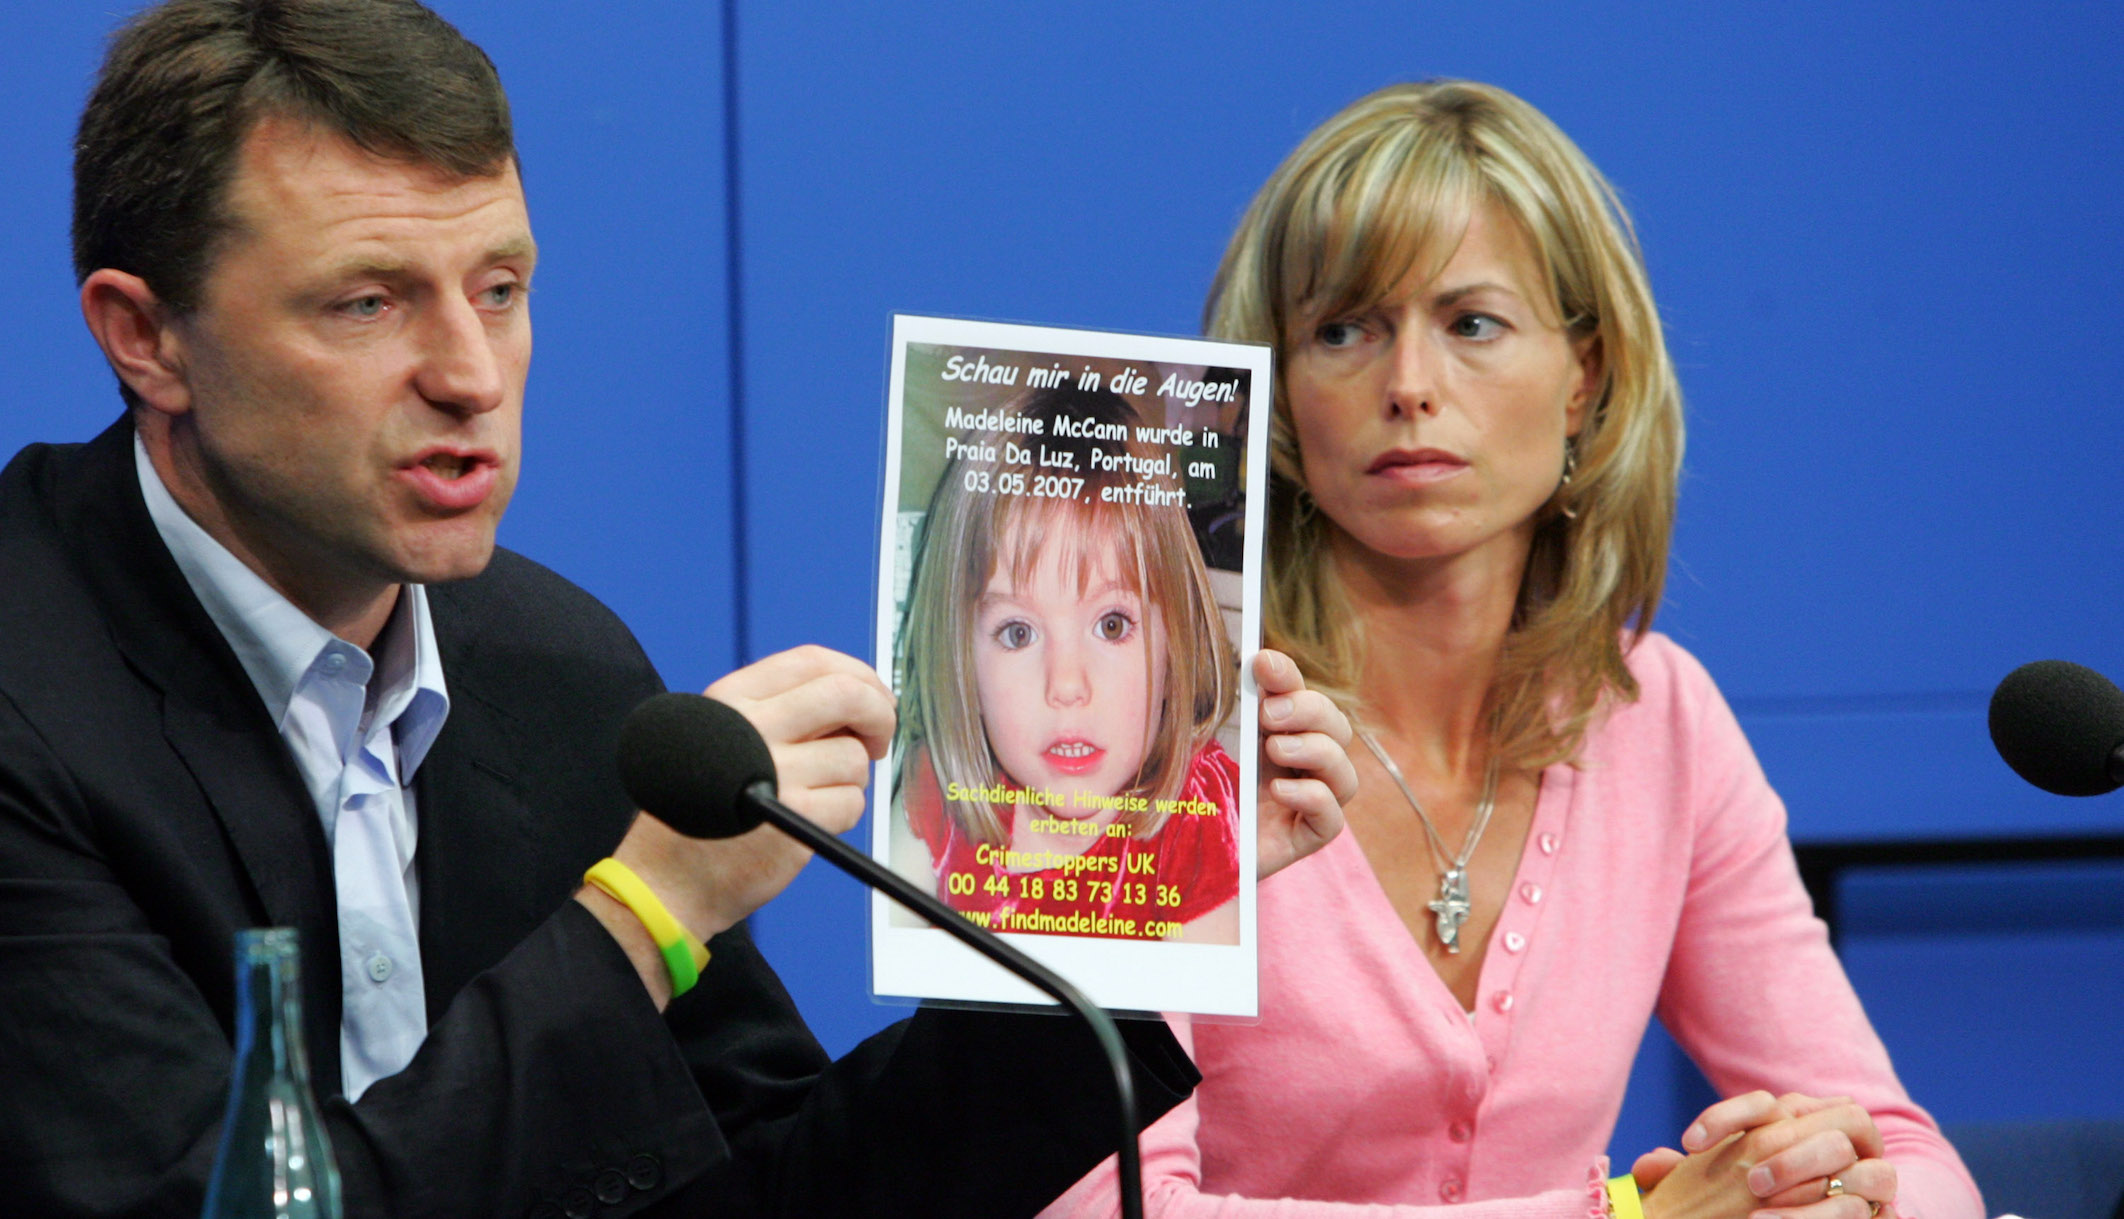 Kate and Gerry McCann, parents of missing 4-year-old British girl Madeleine McCann holding up a picture of their daughter during a press conference.